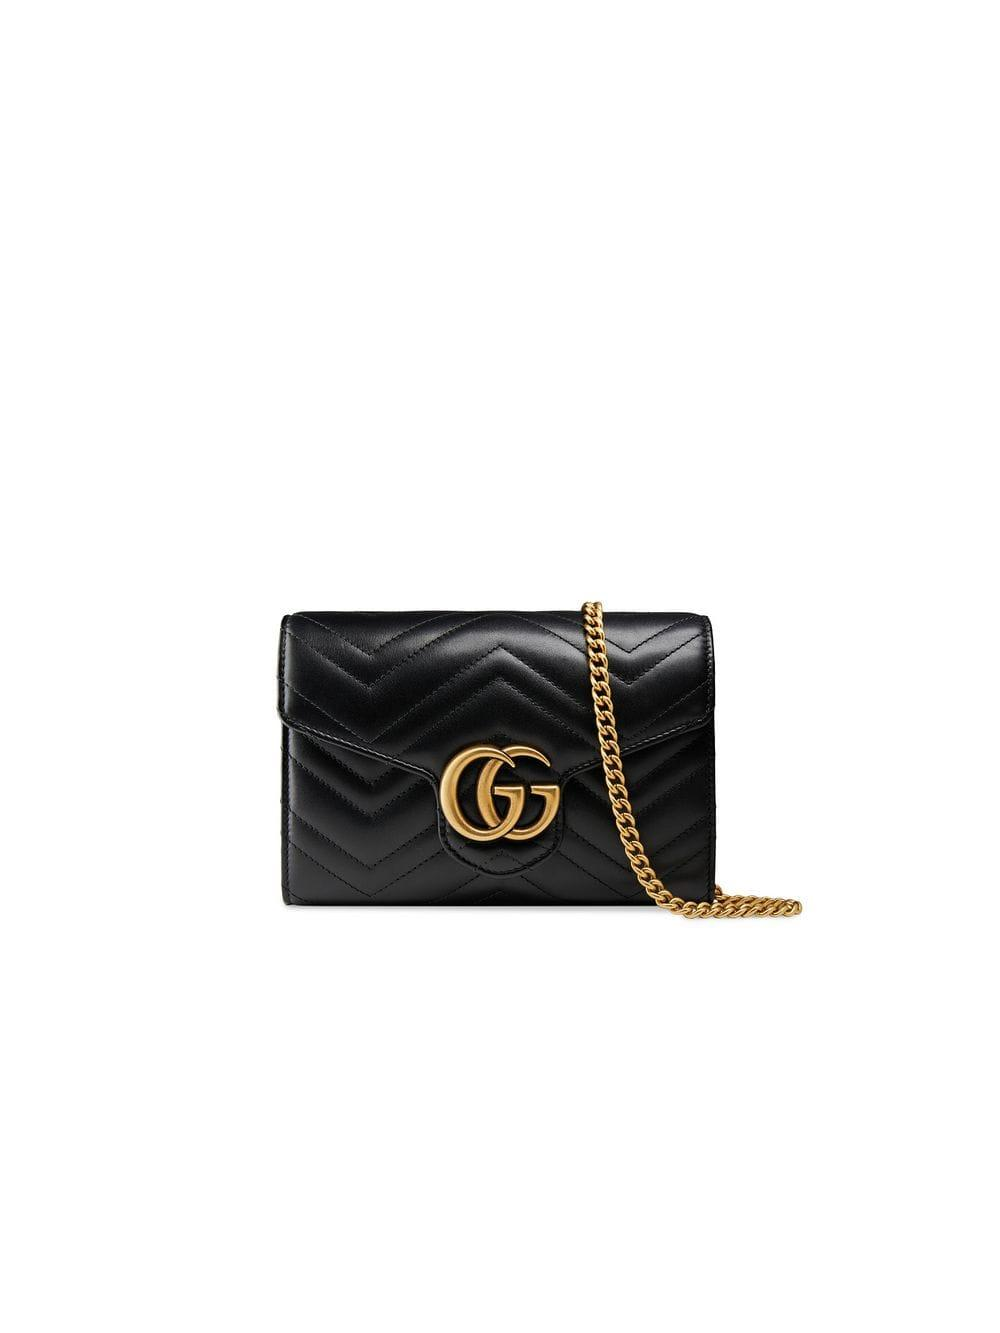 cde93461534 Lyst - Gucci Black GG Marmont Matelassé Mini Bag in Black